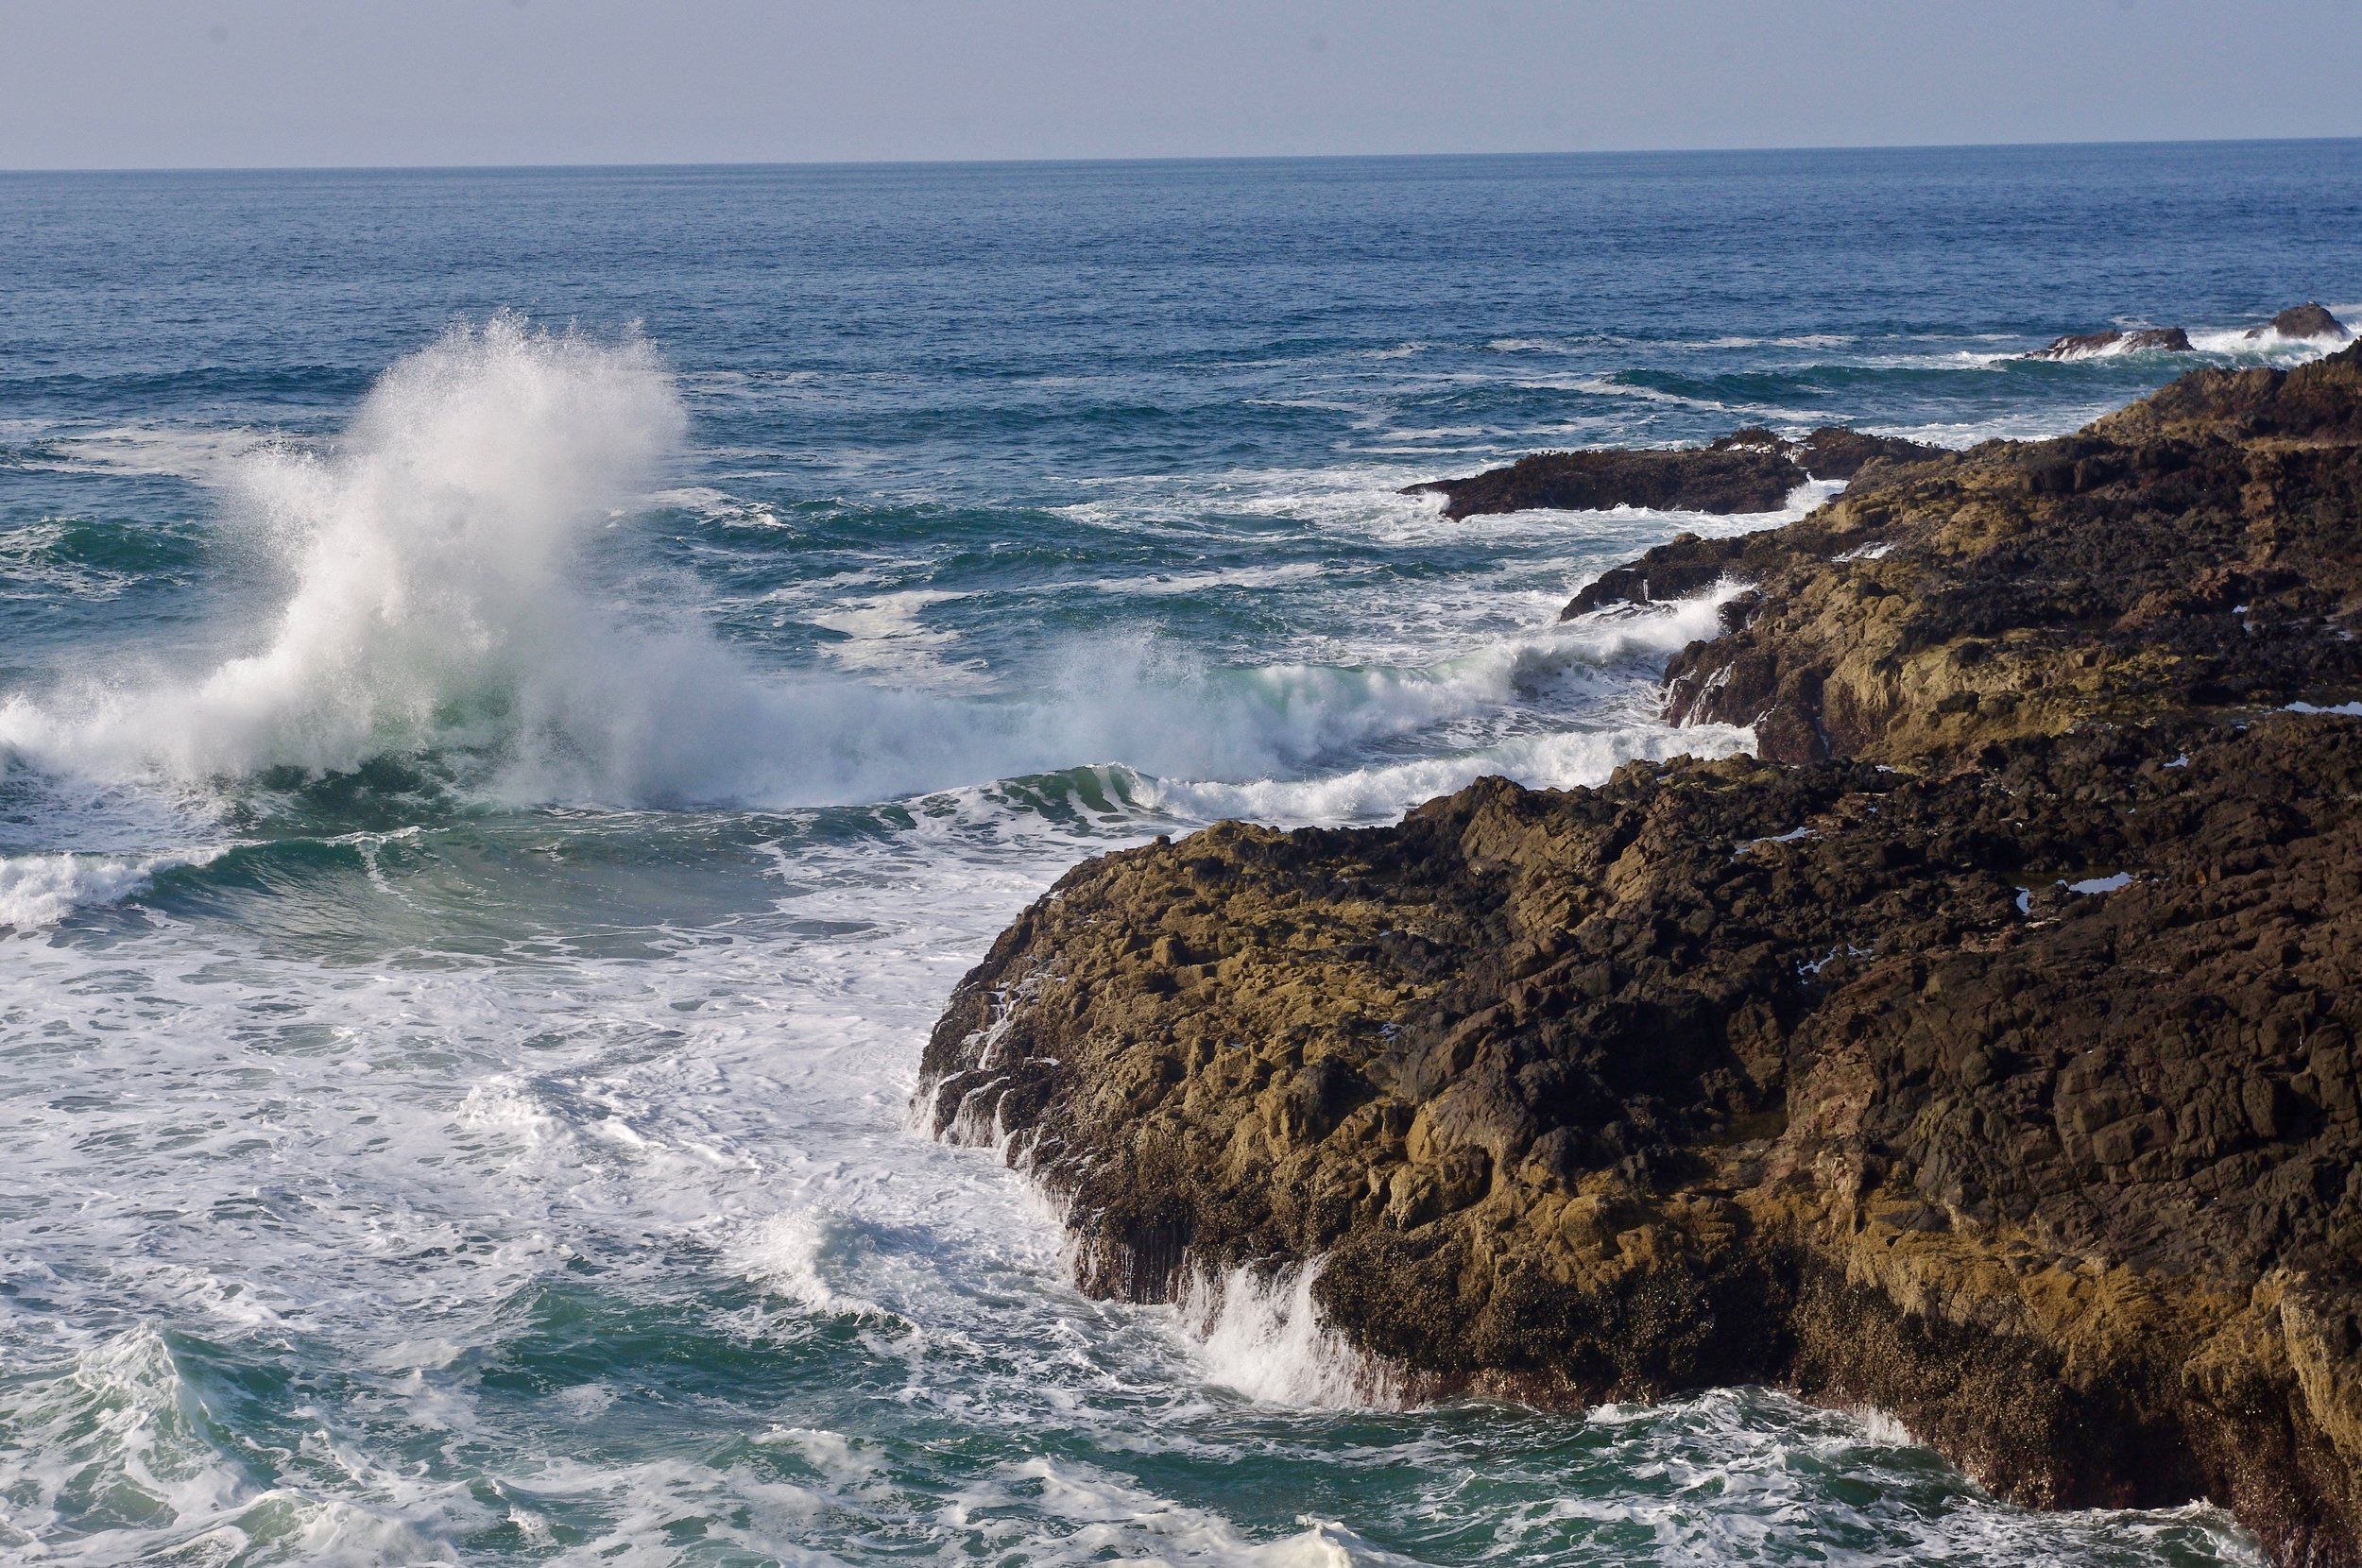 It is hard to resist taking zillions of pictures of the scenic Oregon coast. So I made nom effort to resist, and here is yet another picture of waves and rocks.